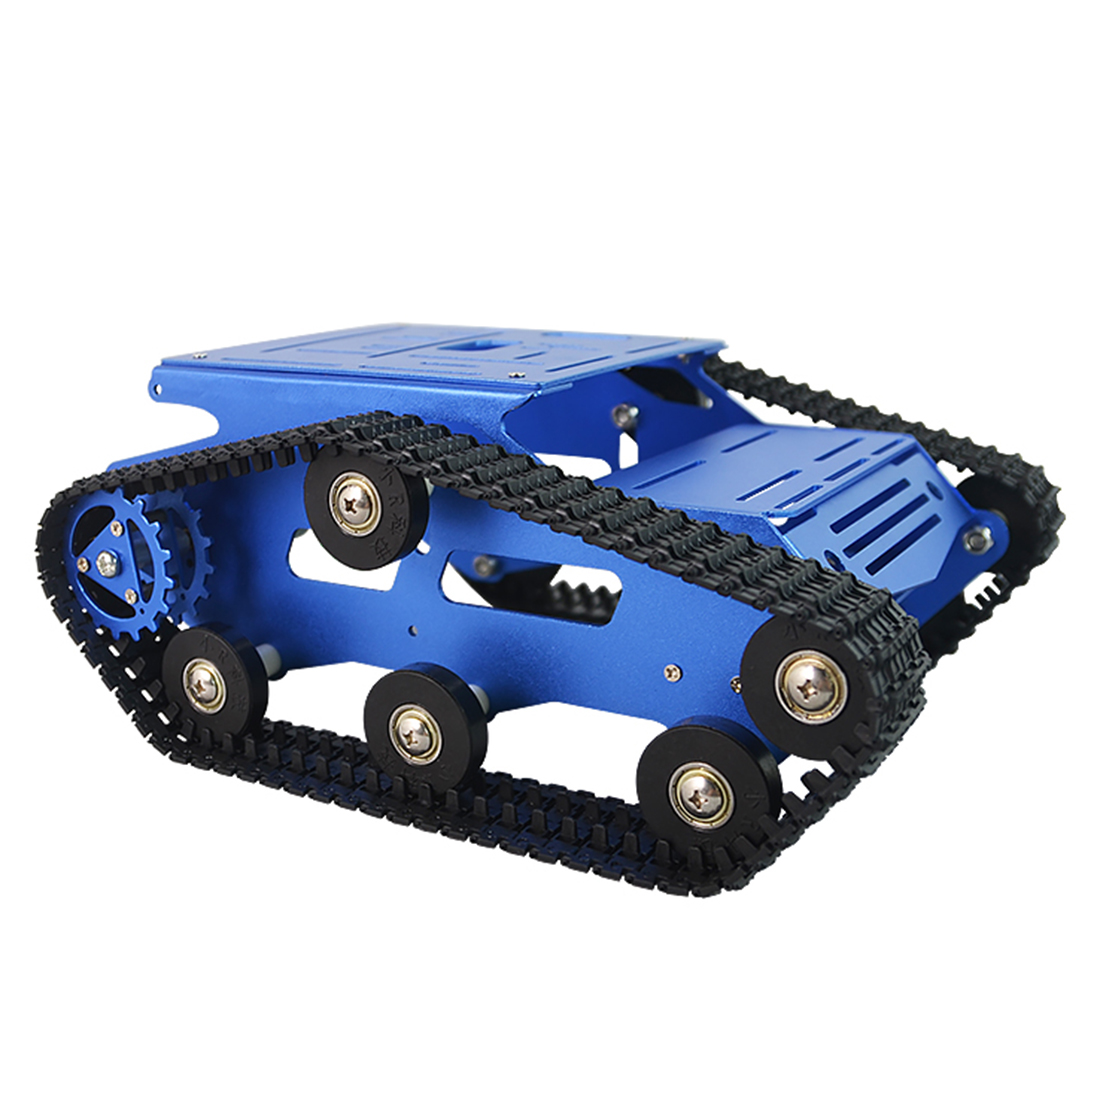 DIY Intelligent Programmable Robot Tank Crawler Chassis Car Frame Kit High Quality Gift For Adults Children - Blue 1